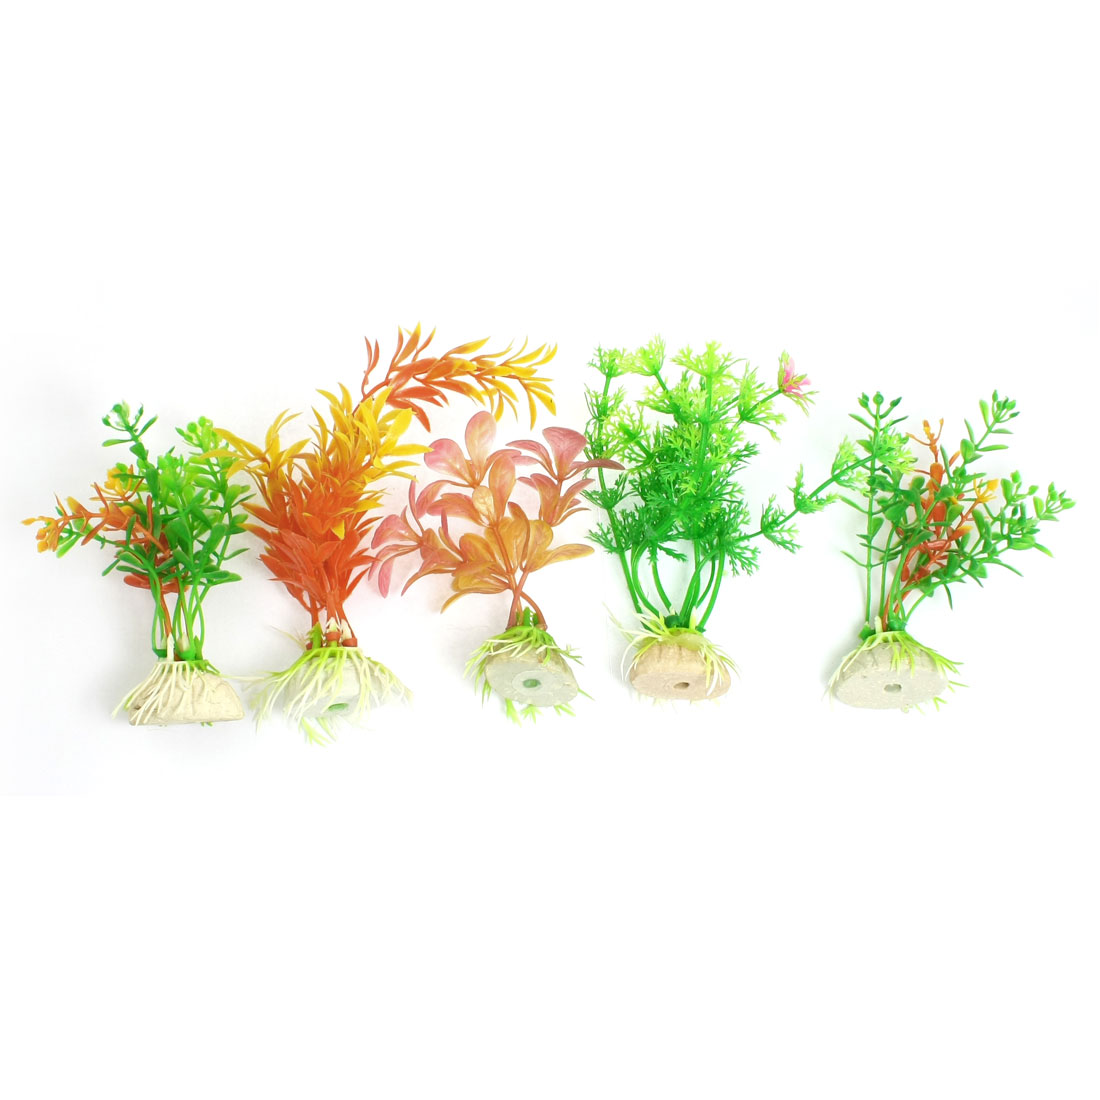 "5 Pcs Multicolor Plastic Grass Plant Decor 4.3"" for Aquarium Tank"